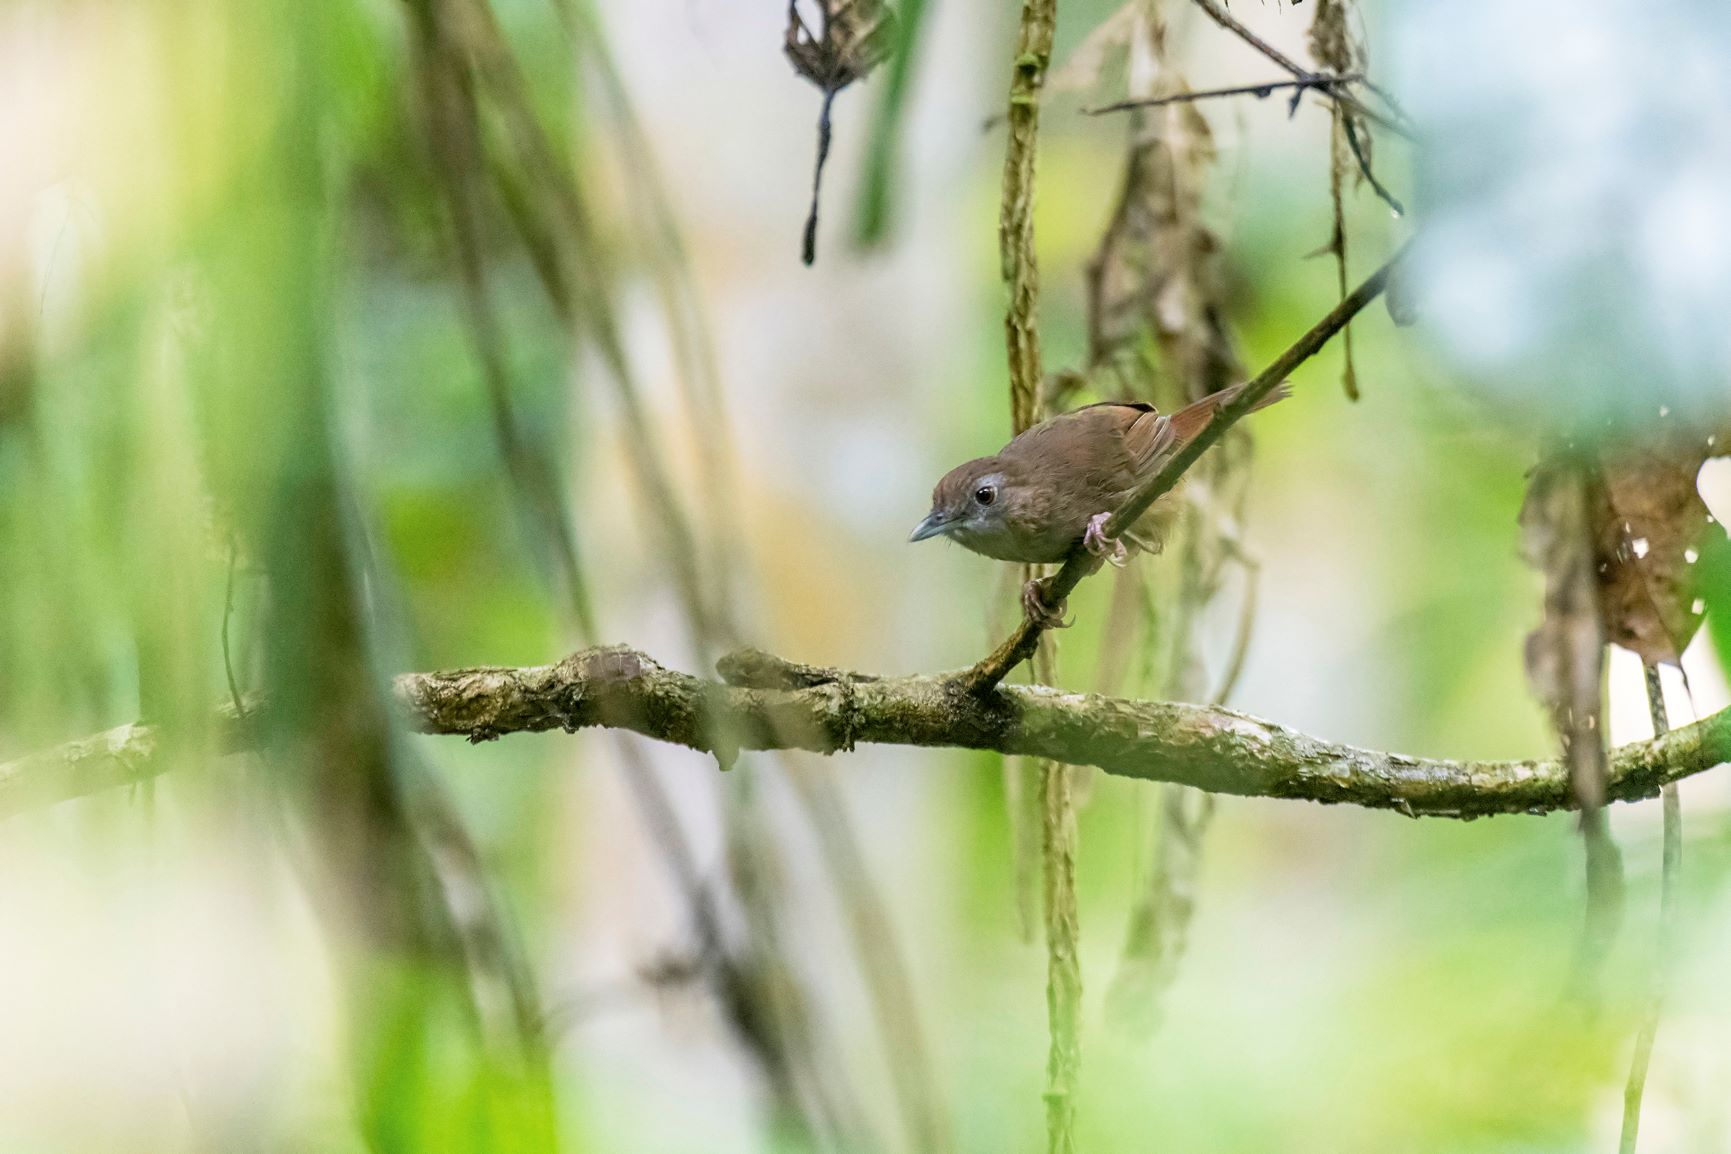 The Abbott's babbler is a short-tailed brown bird with red eyes, commonly found in Northeast India. Photo: Udayan Borthakur